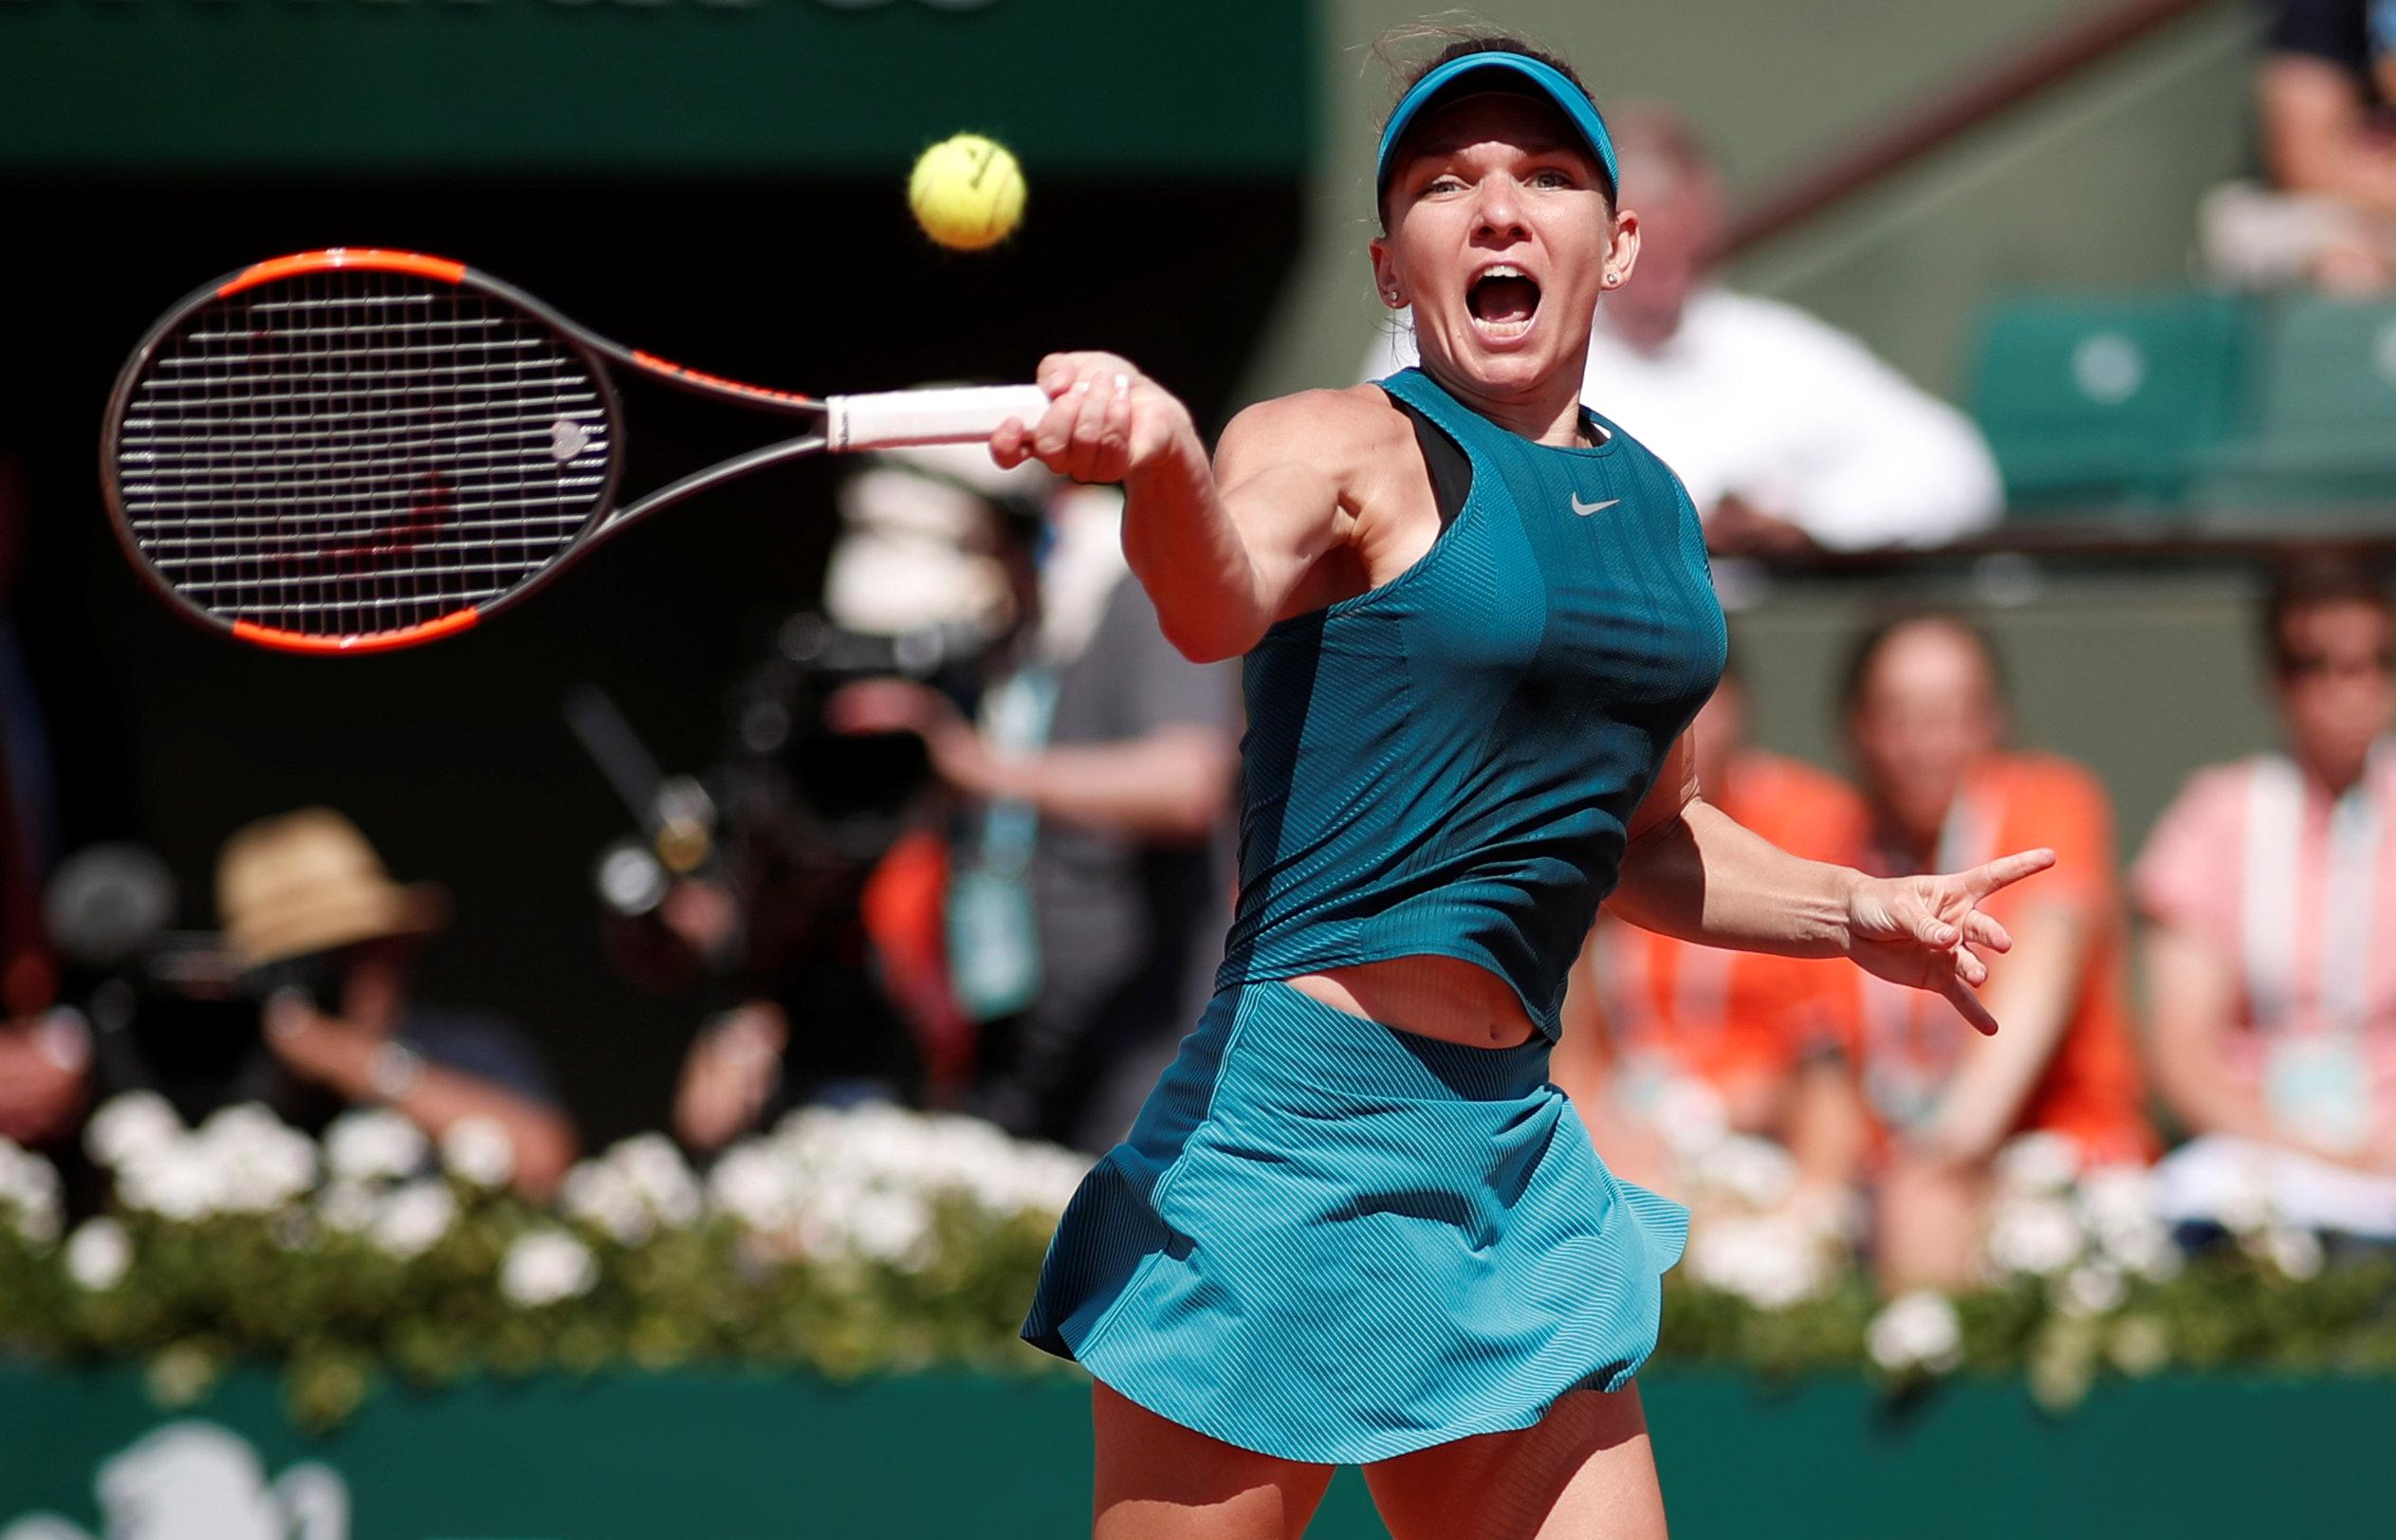 Halep has lost in her two previous French Open finals as she looks to win her maiden Grand Slam